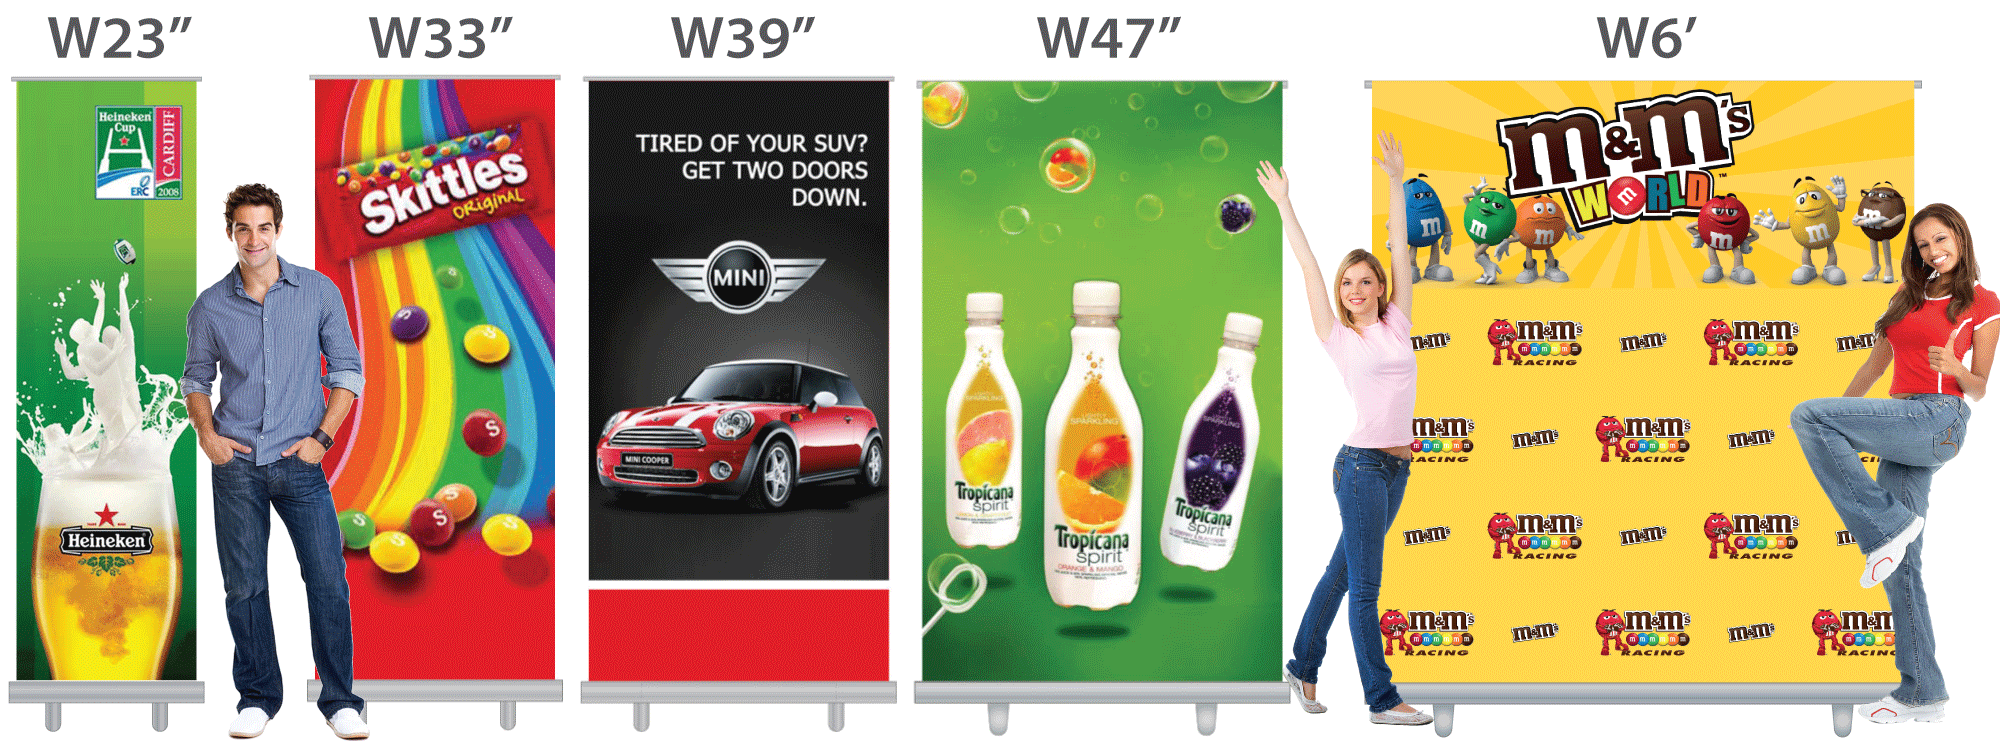 Retractable Banners Sizes comparison on retractable-banner-stands.com